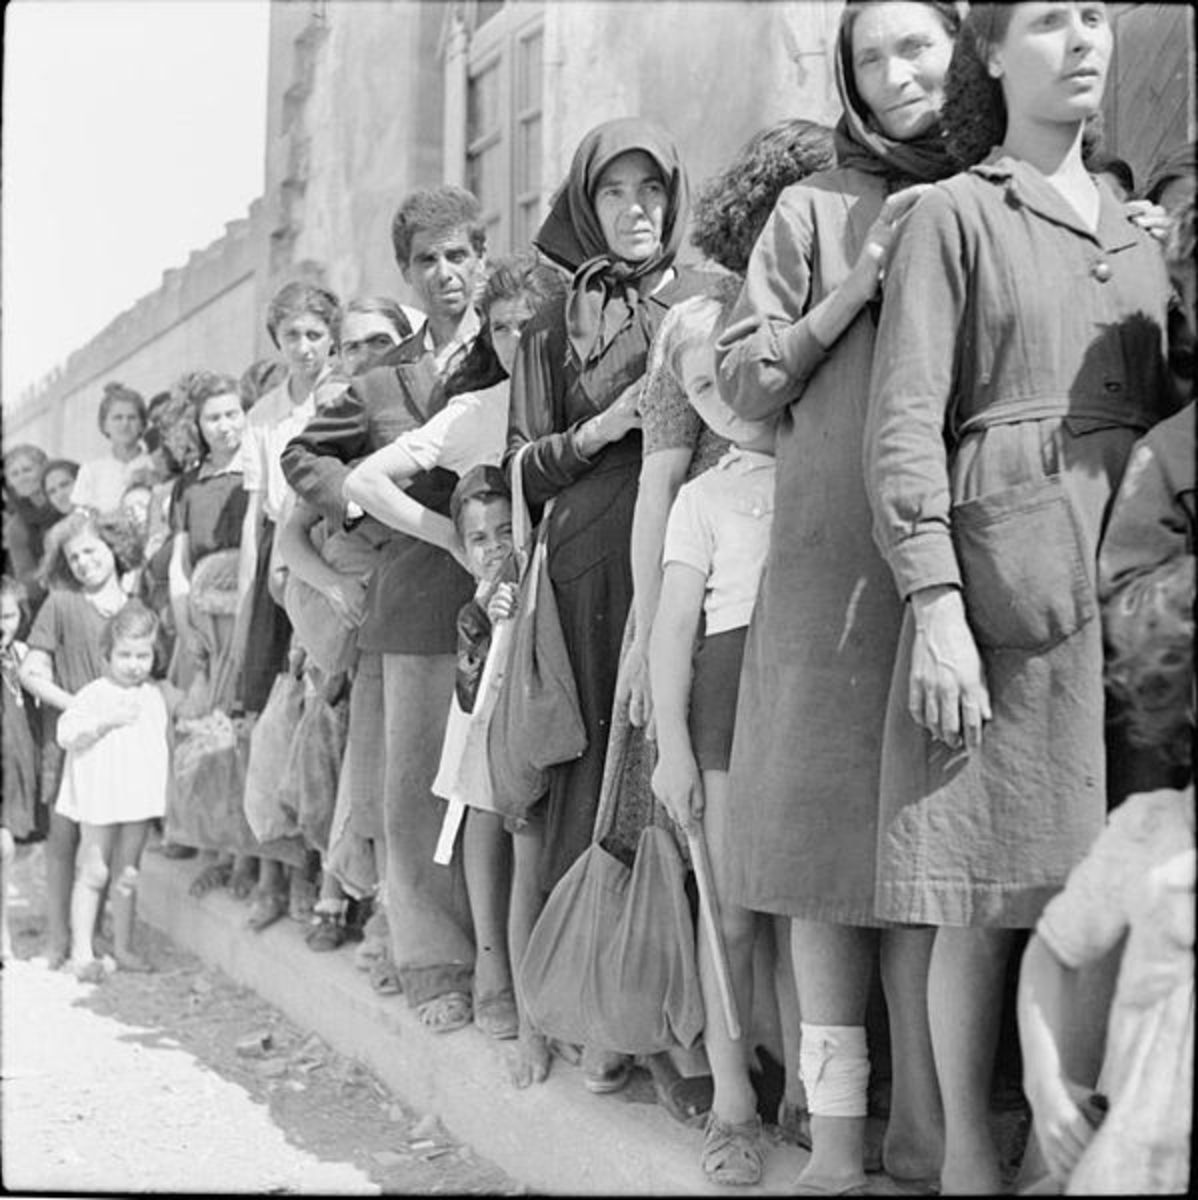 The Liberation of Rhodes, 1945. Civilians on the island of Rhodes queue to get their ration books from the British military authorities.